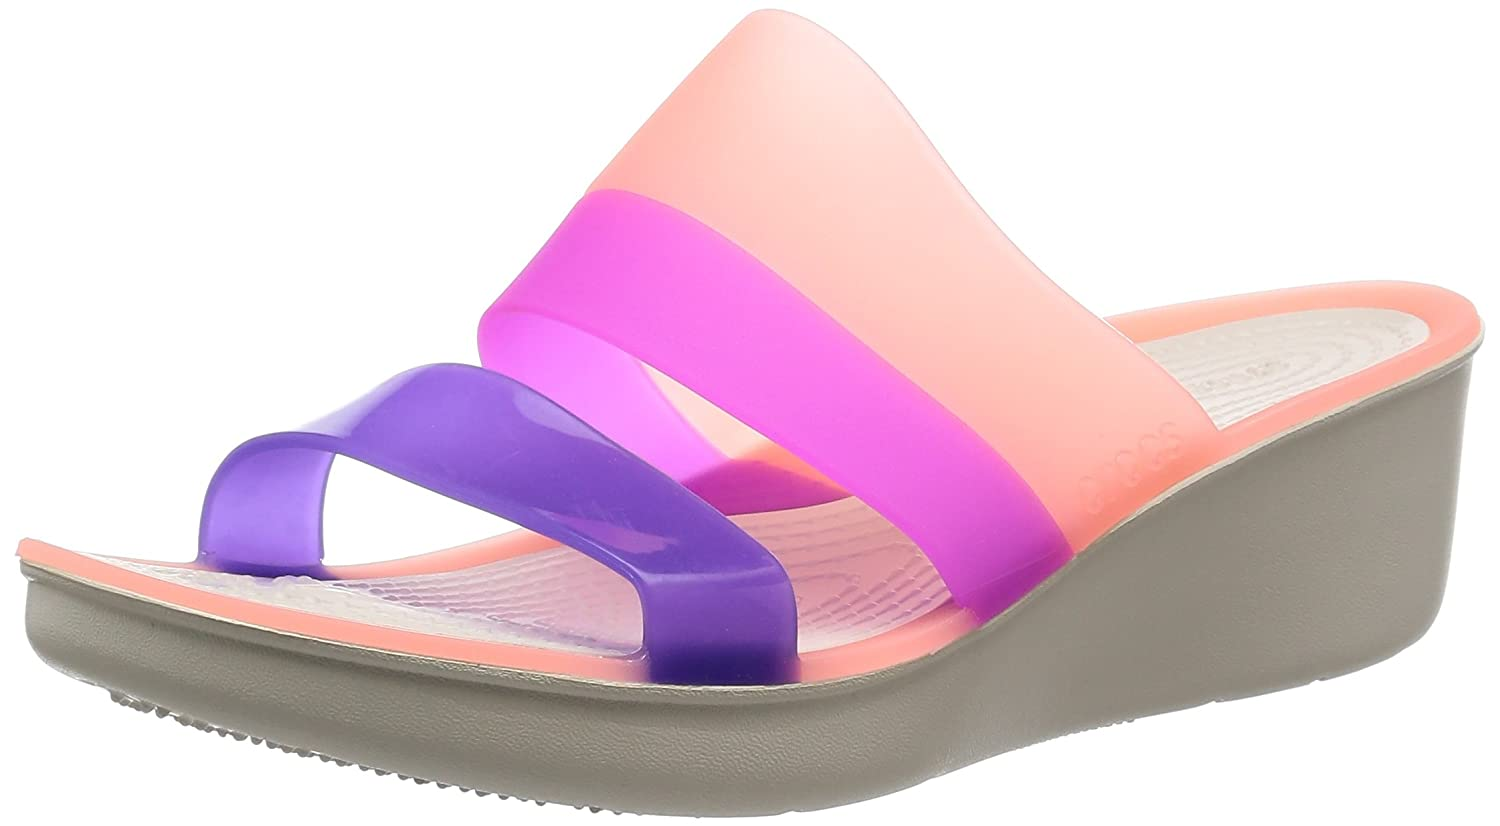 cfd79a68738430 crocs Women's Melon/Stucco Fashion Sandals-W8 (200031-6KM): Buy Online at  Low Prices in India - Amazon.in